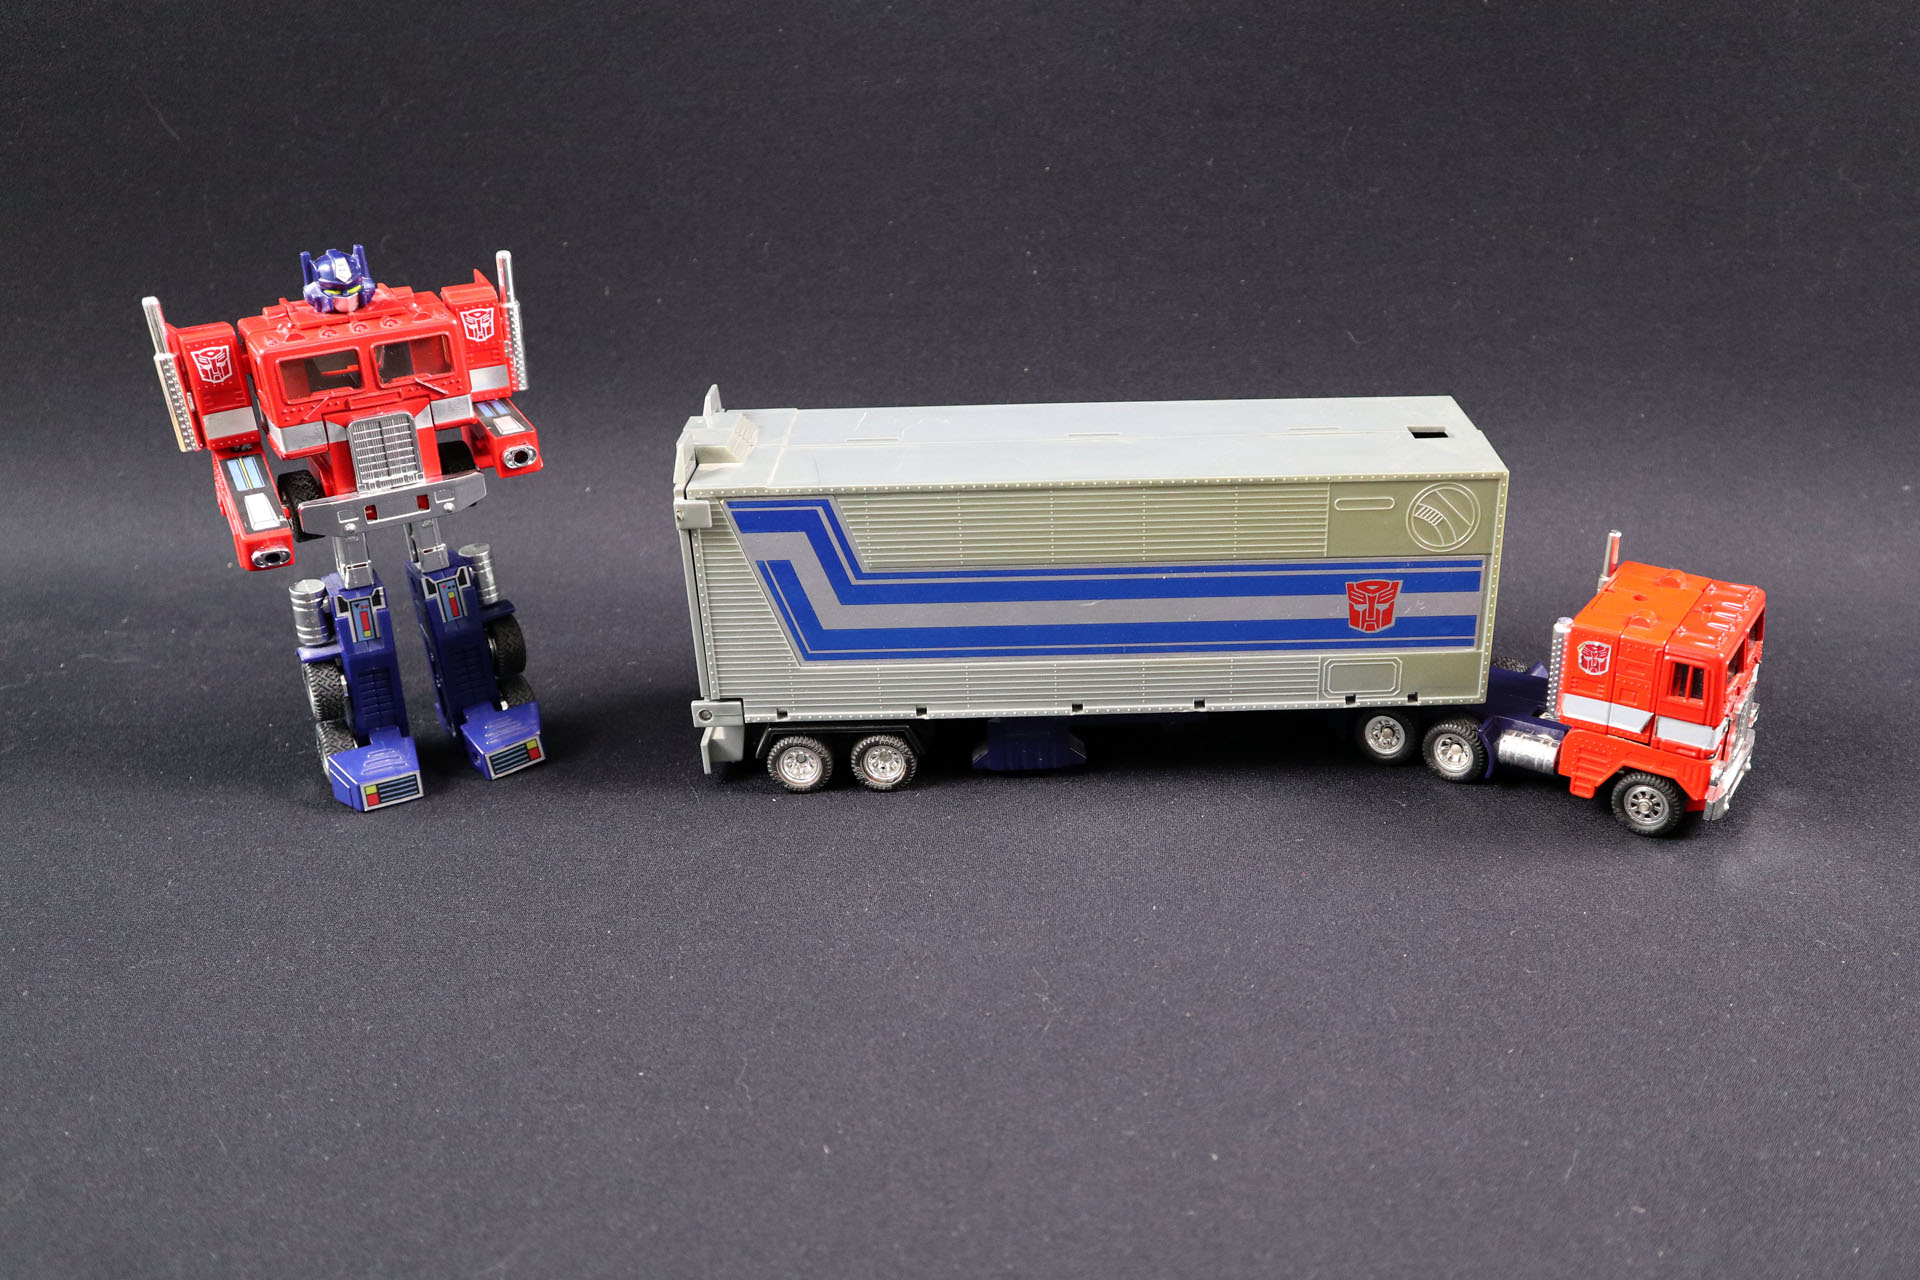 TF_G1_Optimus-Prime-01